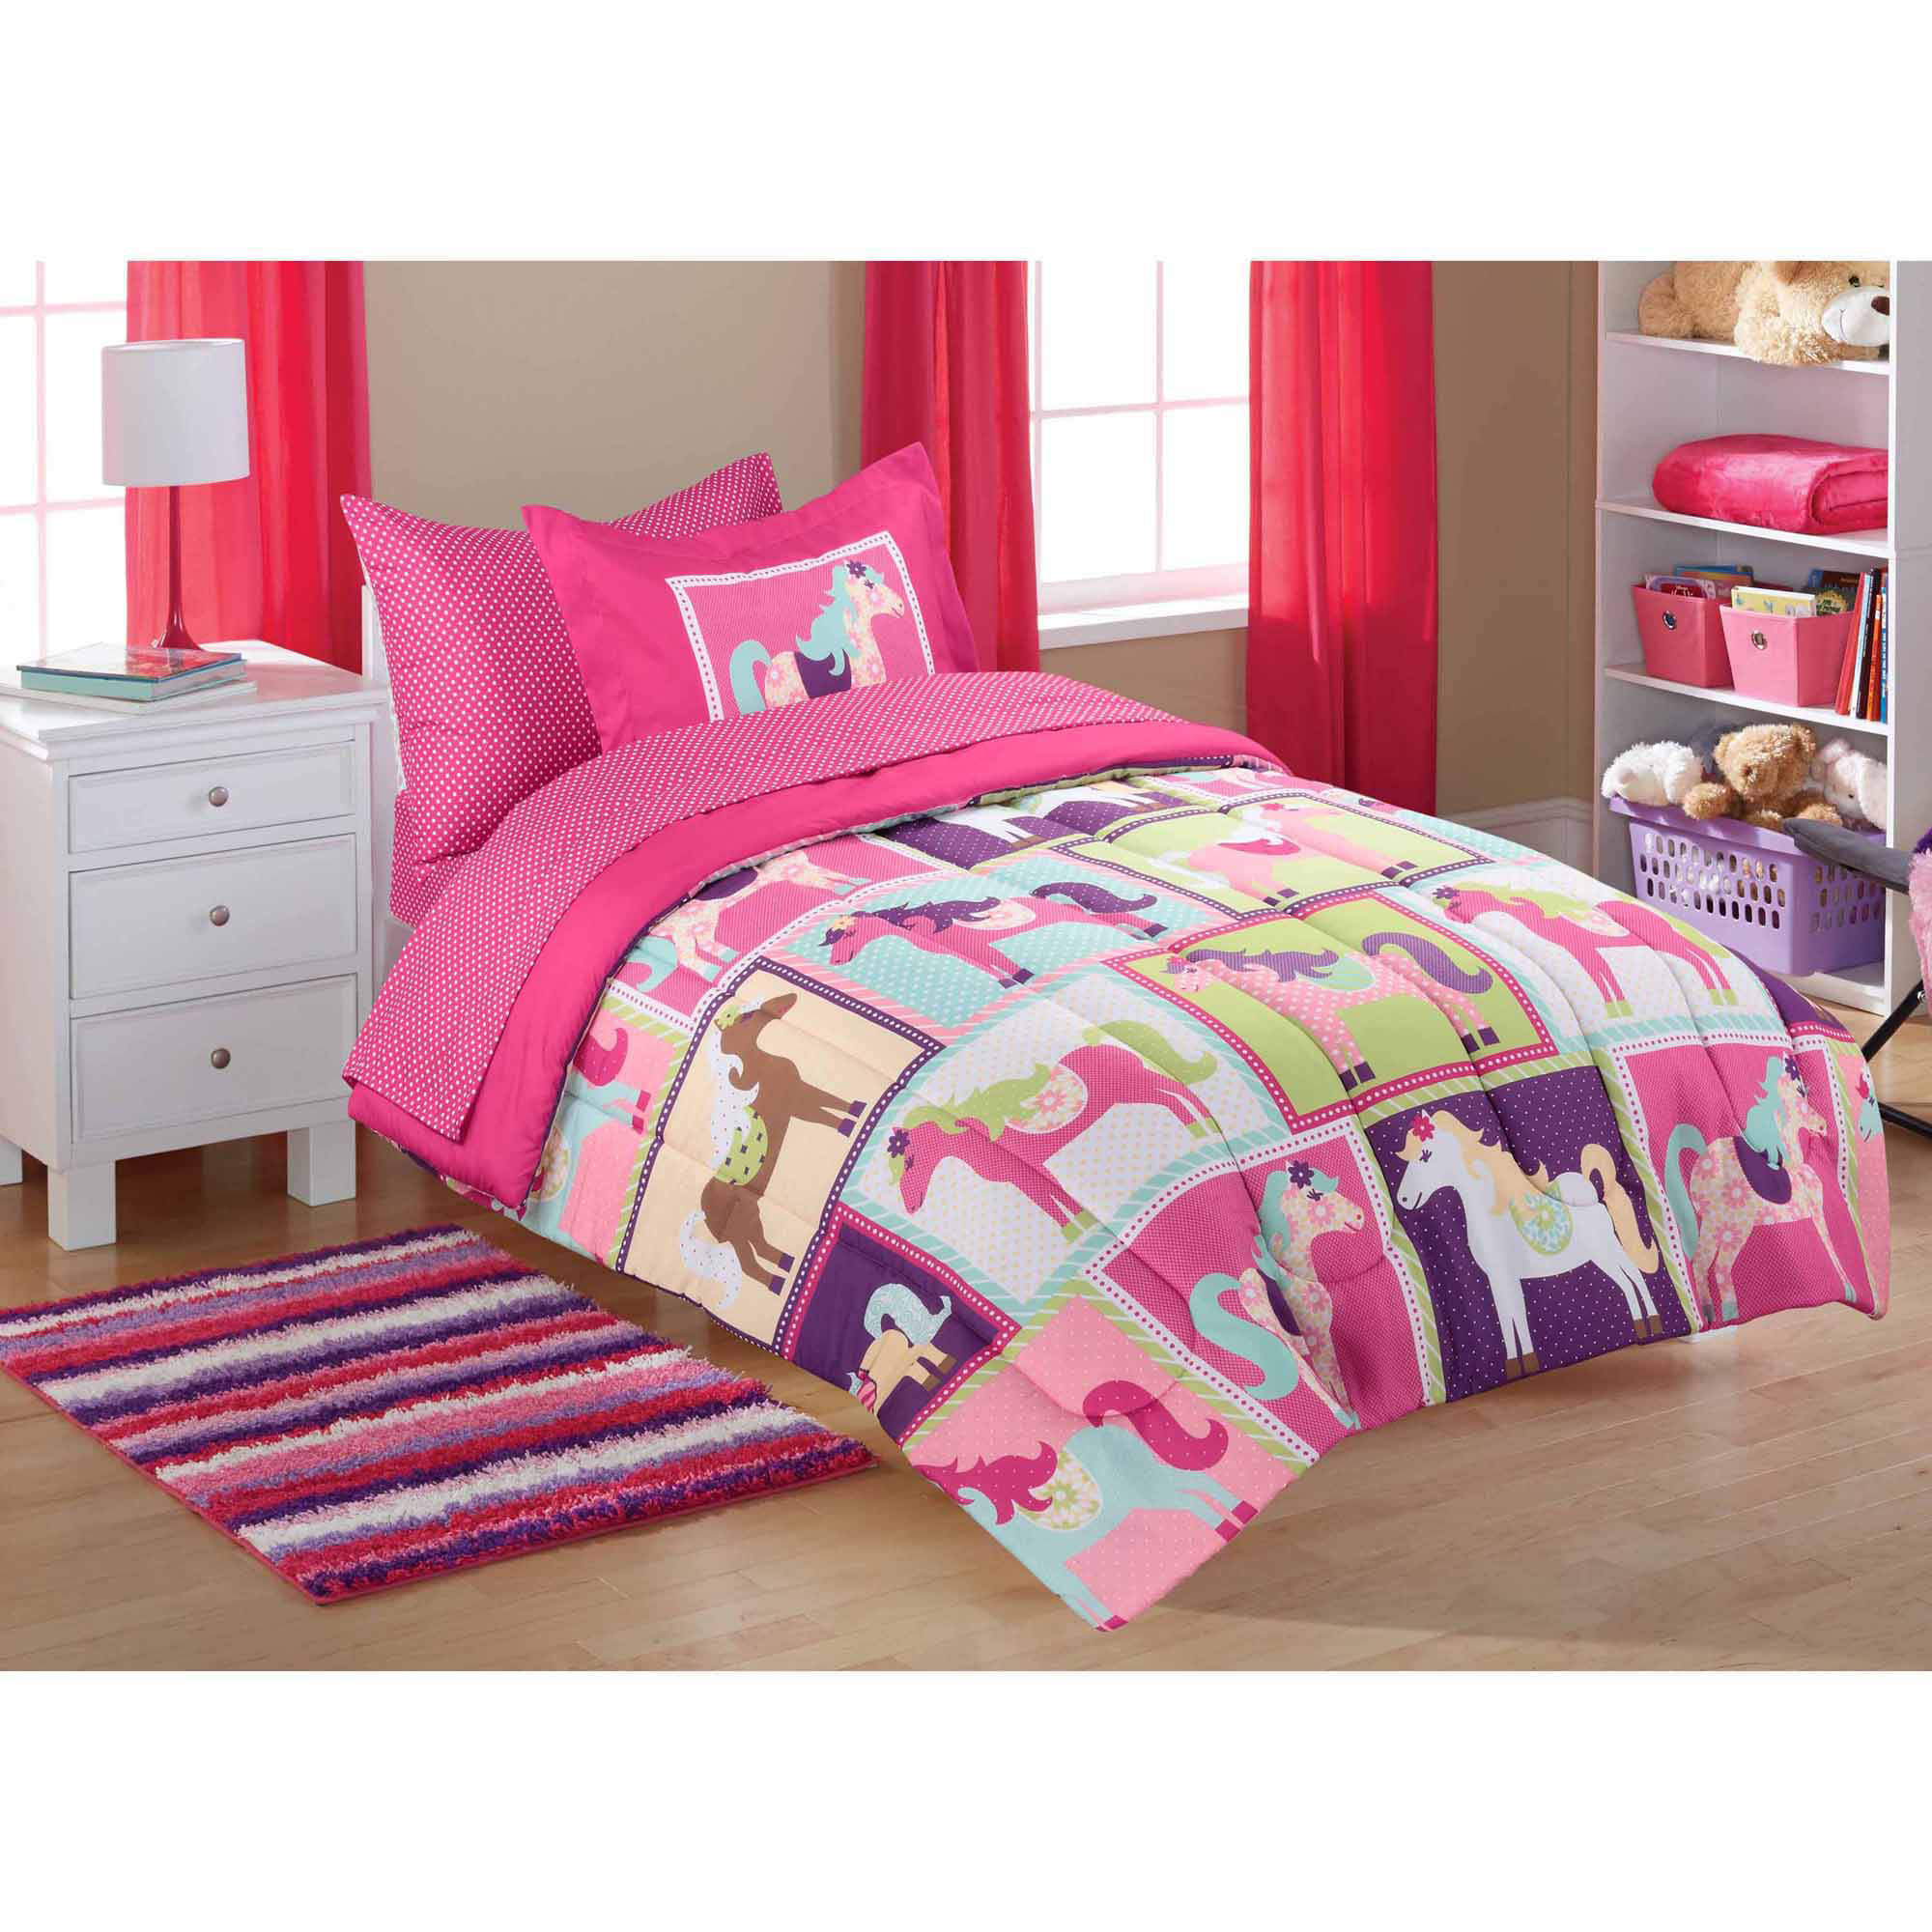 Southwest Bedding Sets And Decor